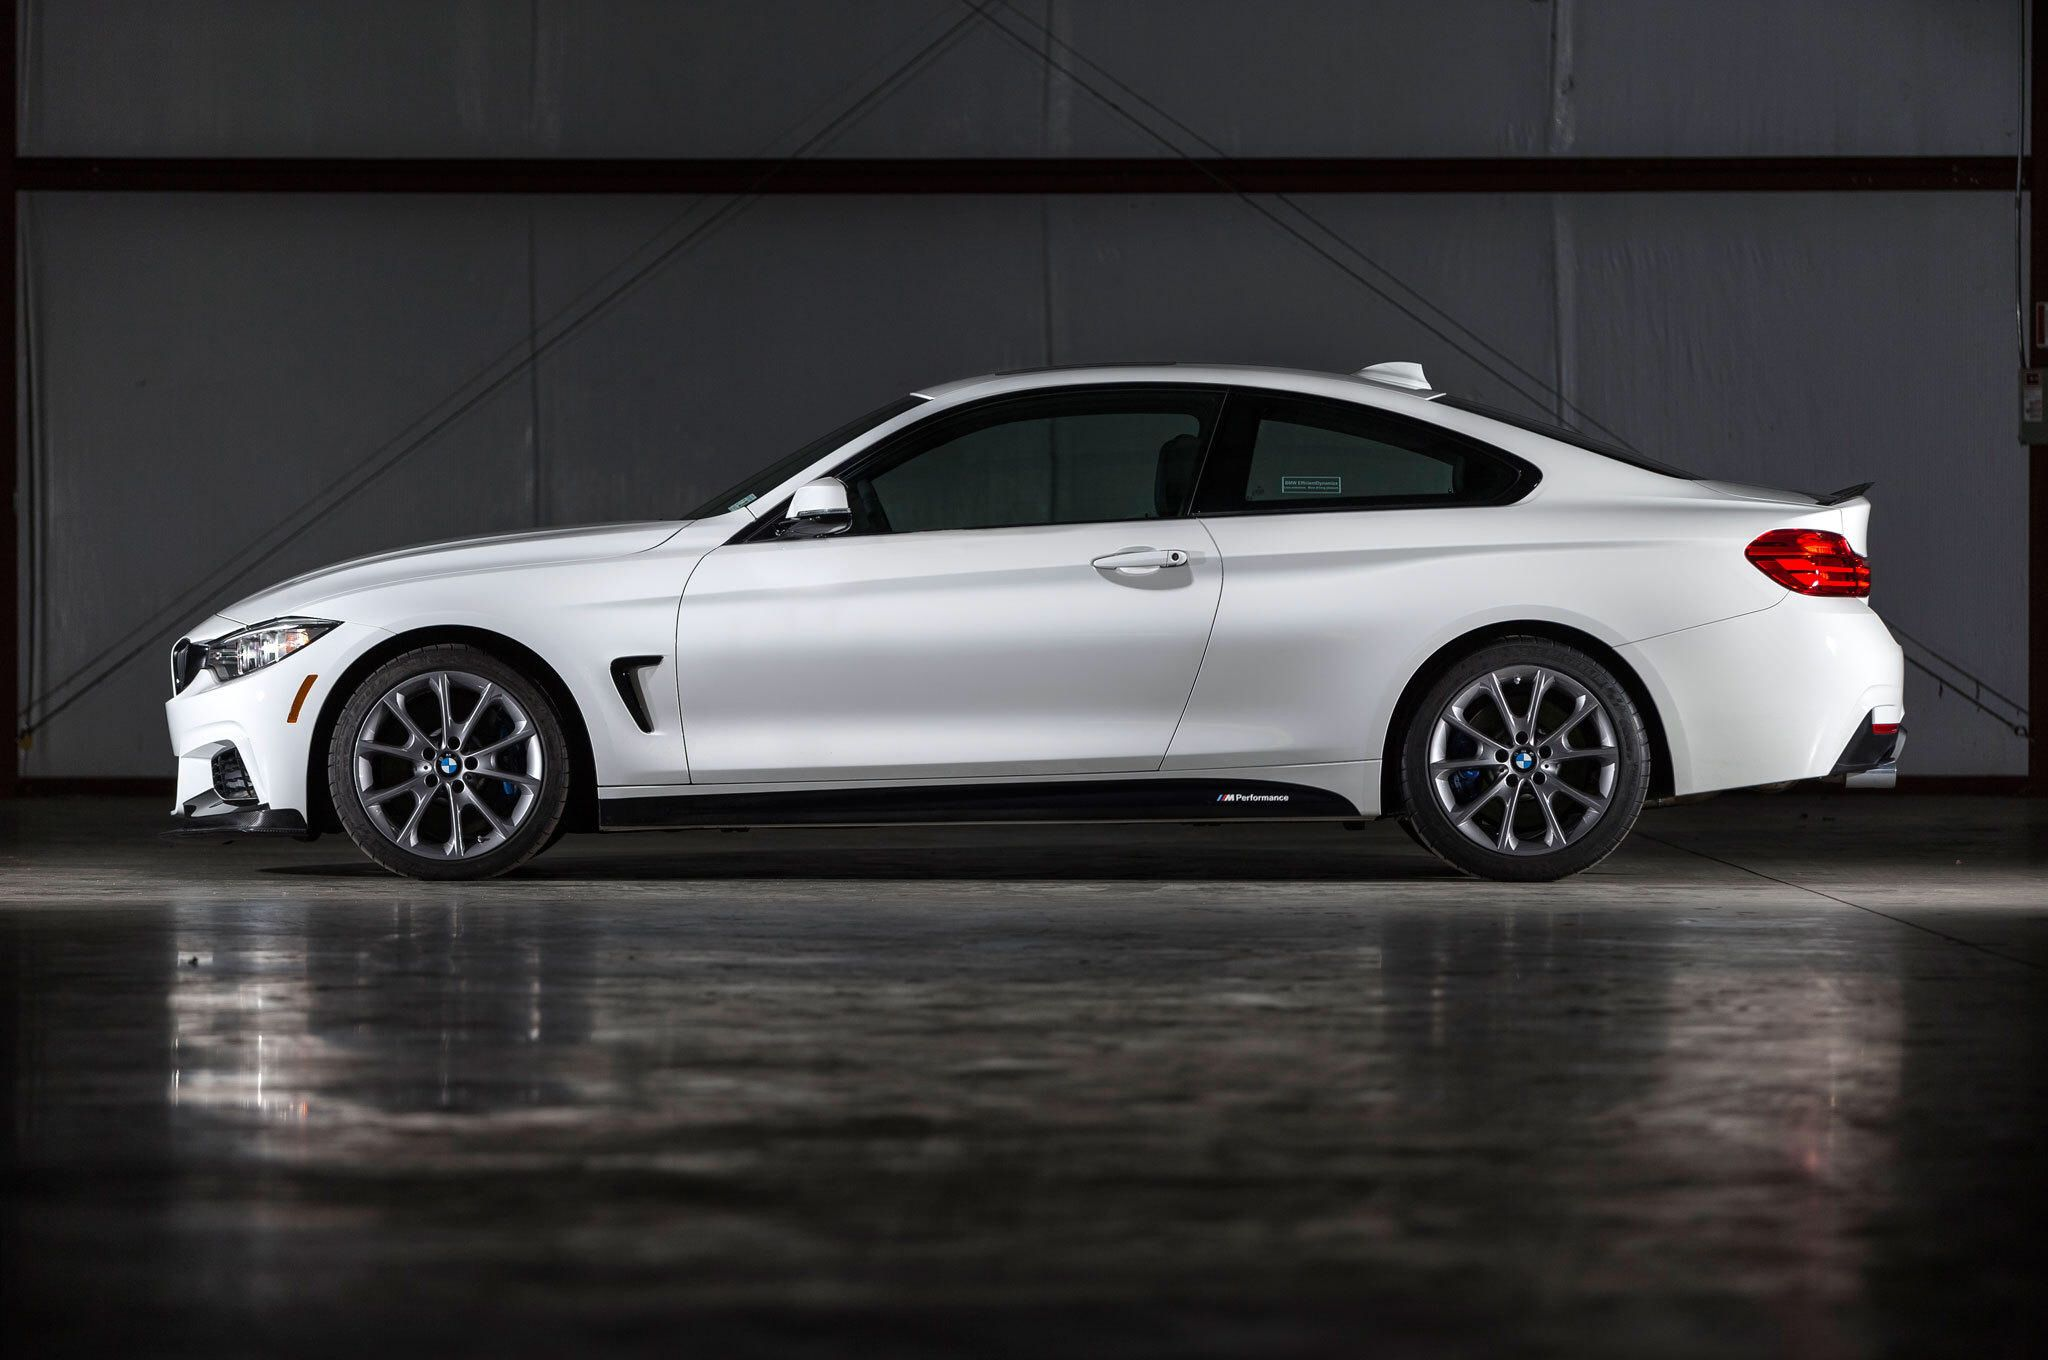 2016 Bmw 435i Zhp Coupe Edition Debuts With Hp Bump Handling Upgrades 435i Bmw 435i Bmw